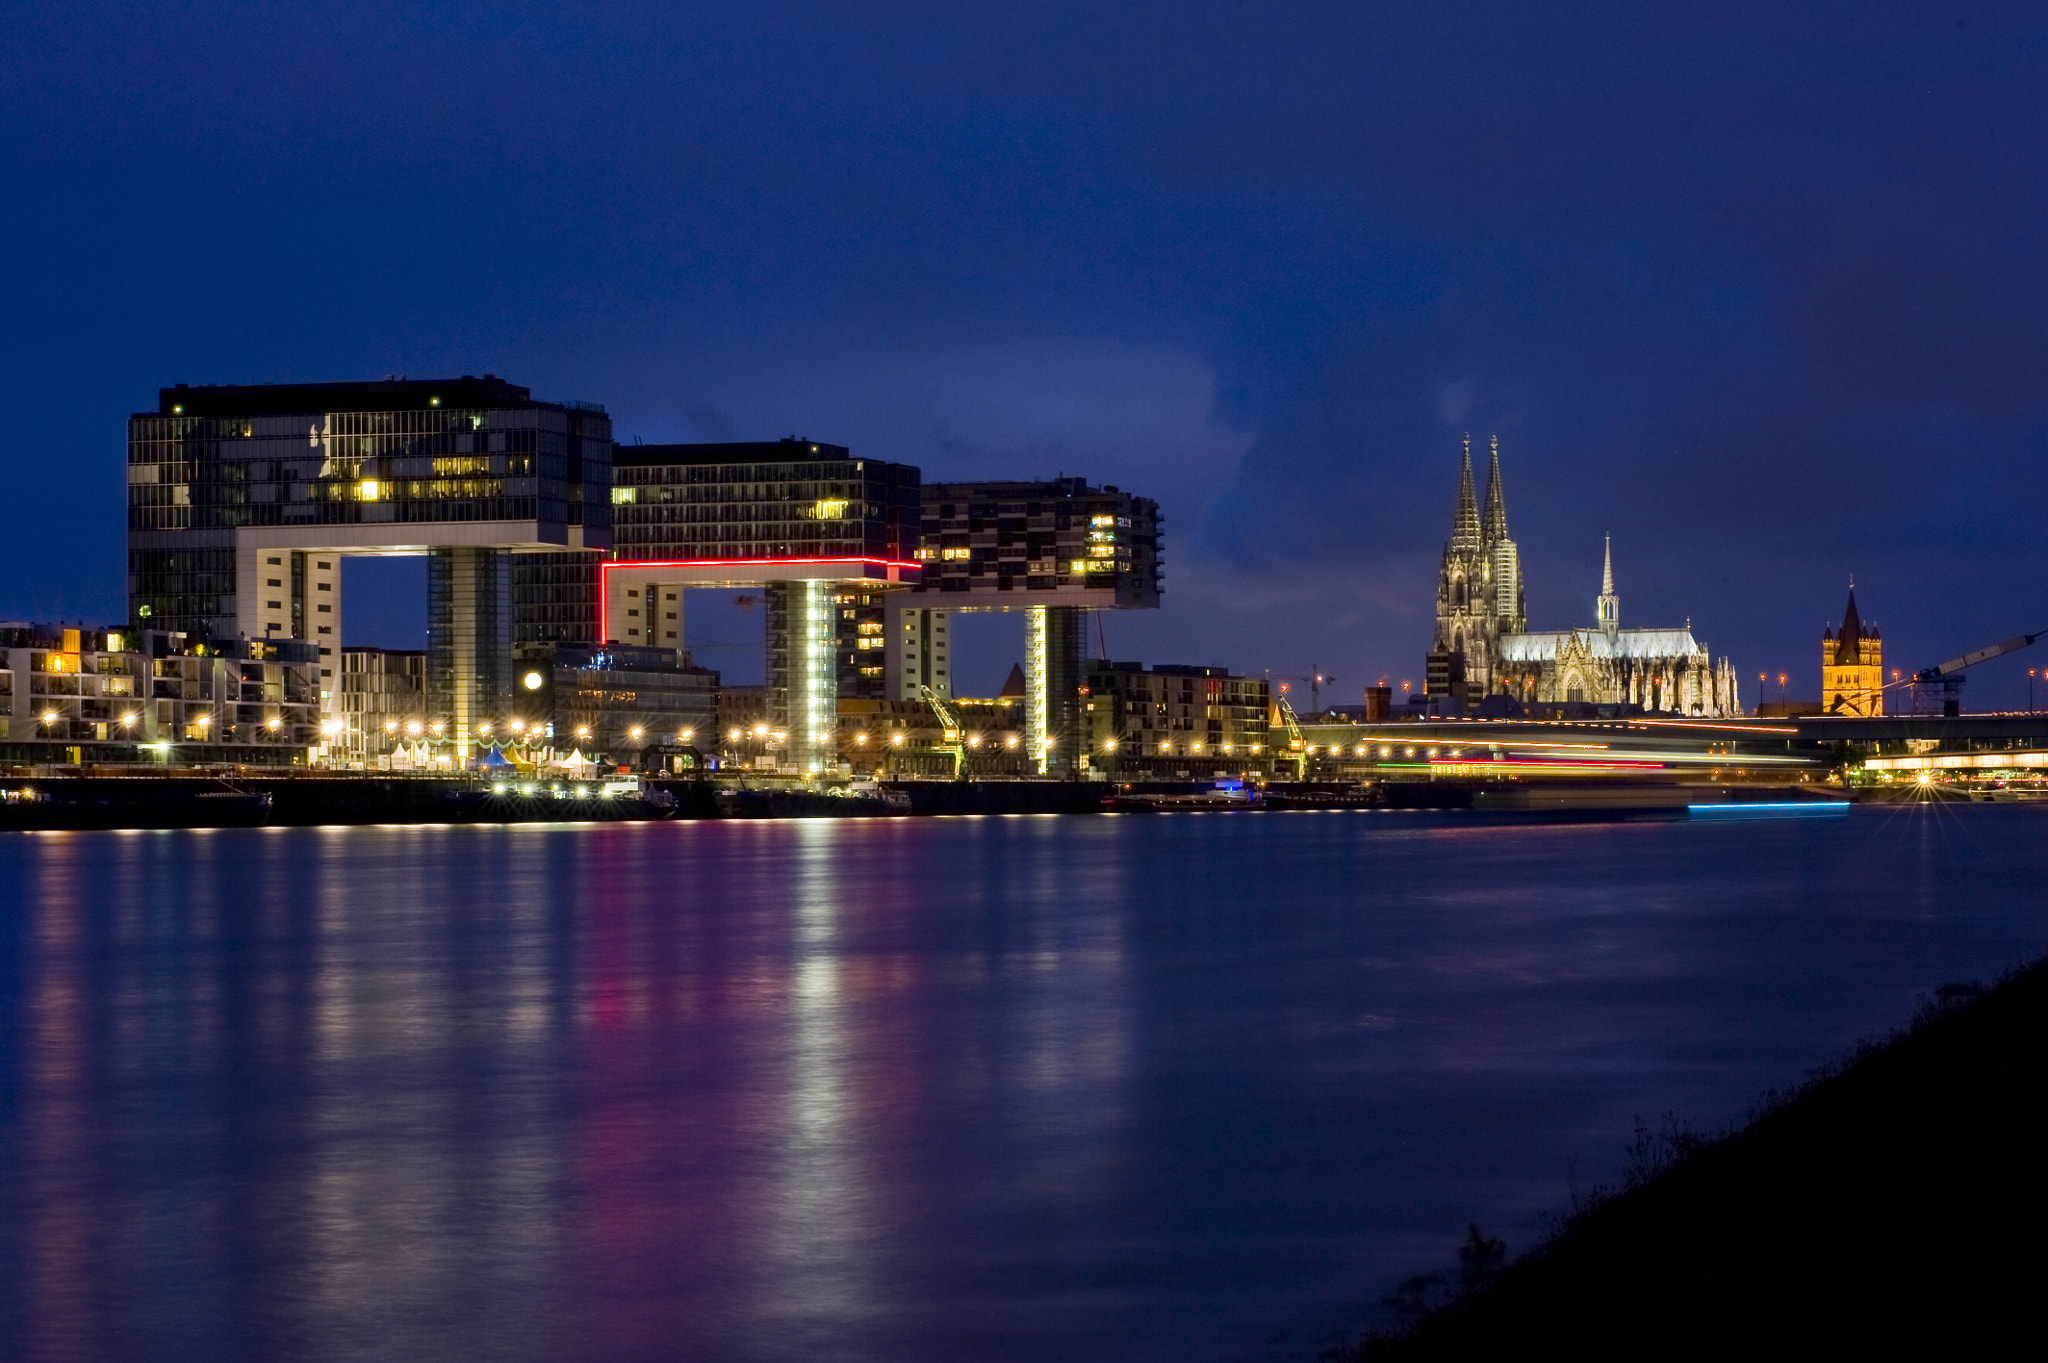 Photograph cologne at night by Frank Heinen on 500px